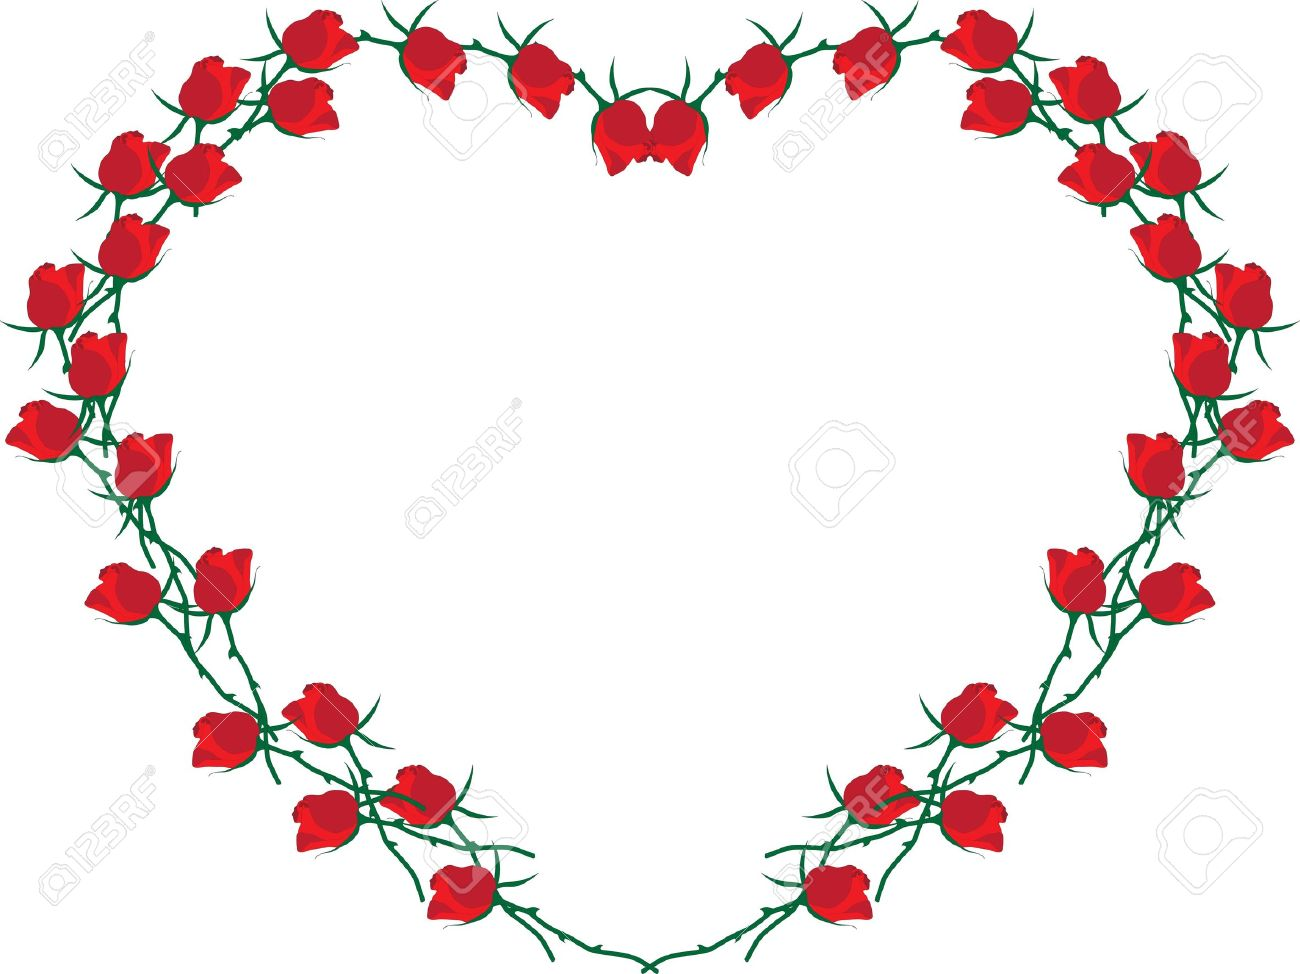 Frame In The Form Of The Heart Heart Of Red Roses Royalty Free ...